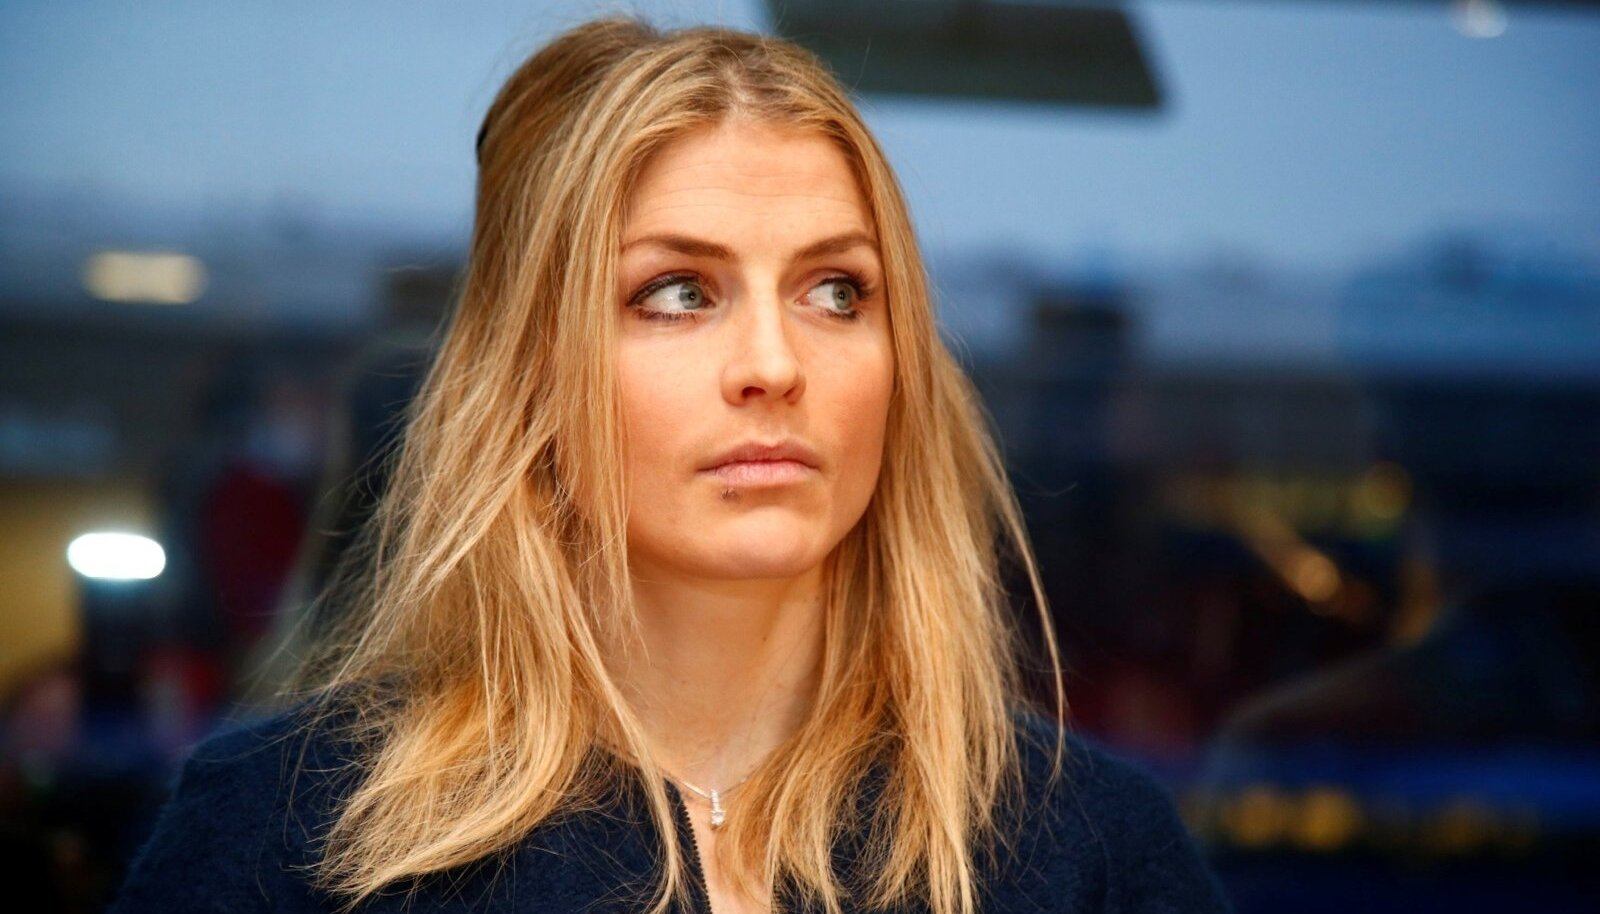 Norwegian cross country skier Therese Johaug before the start of a hearing in her doping case in Oslo